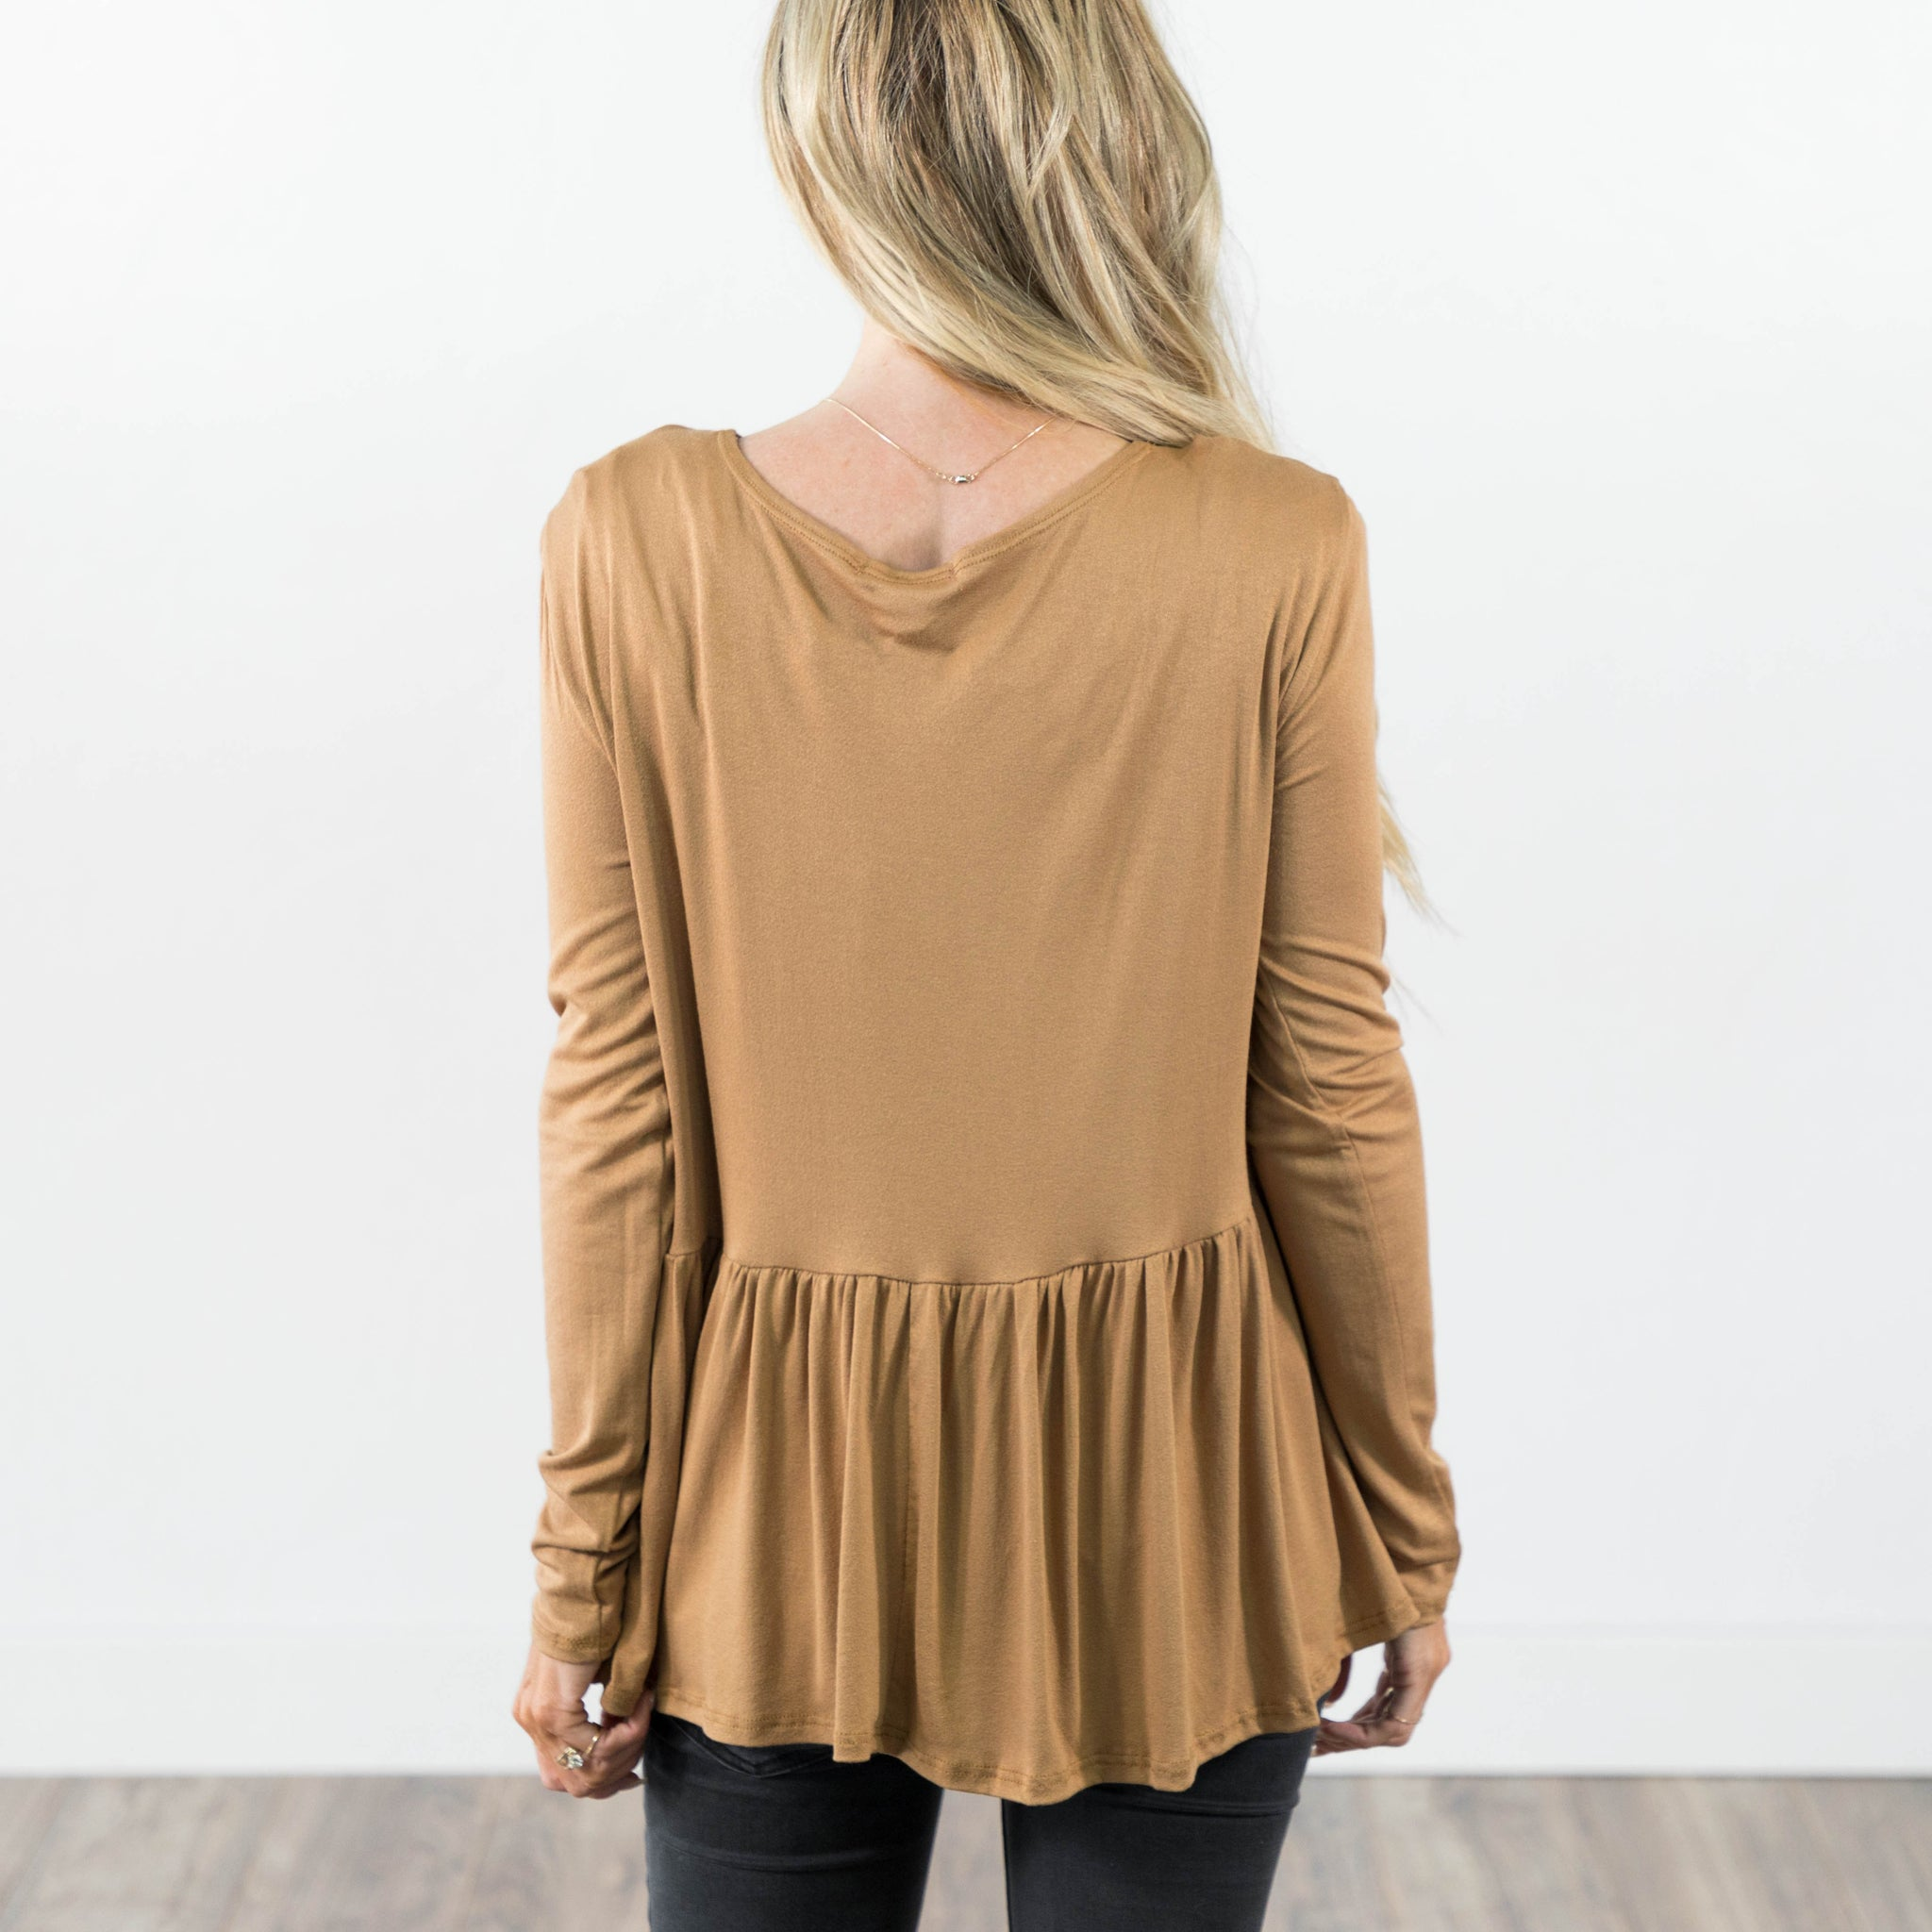 Laurette Baby Doll Top in Camel